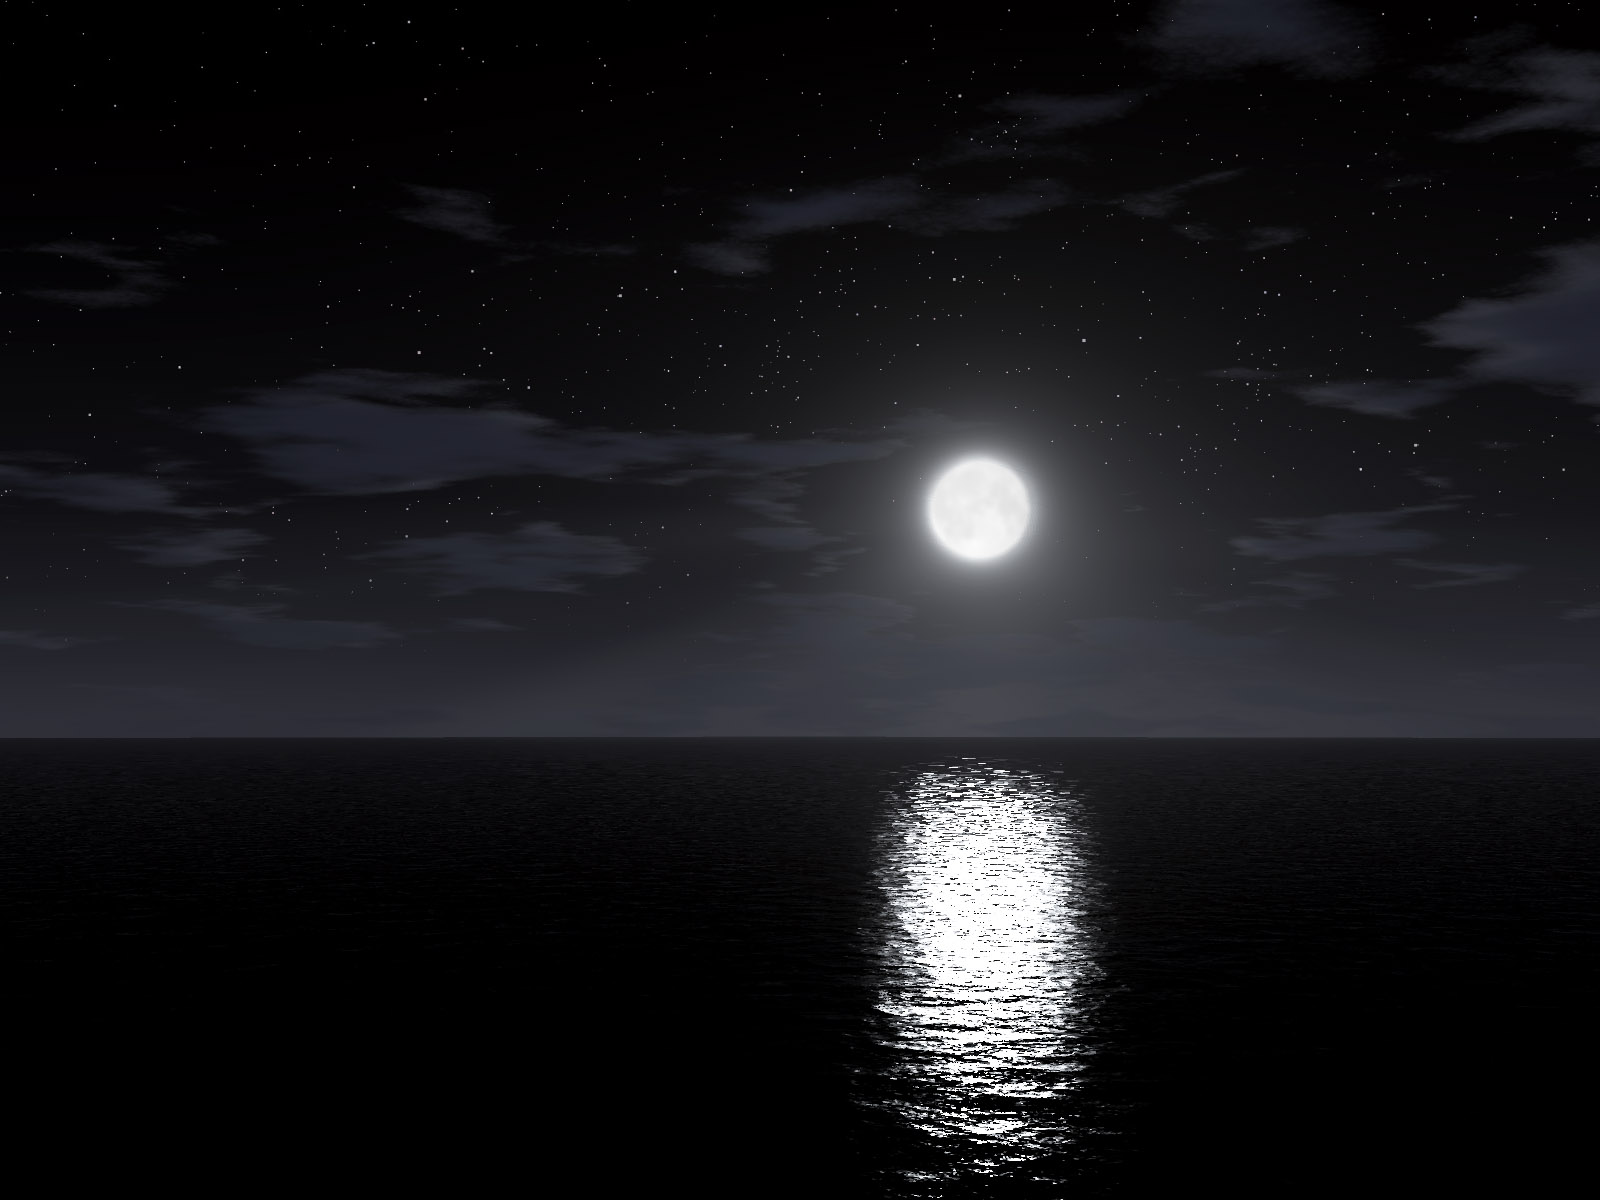 Moon Reflection in the Sea at Night  258 Kb